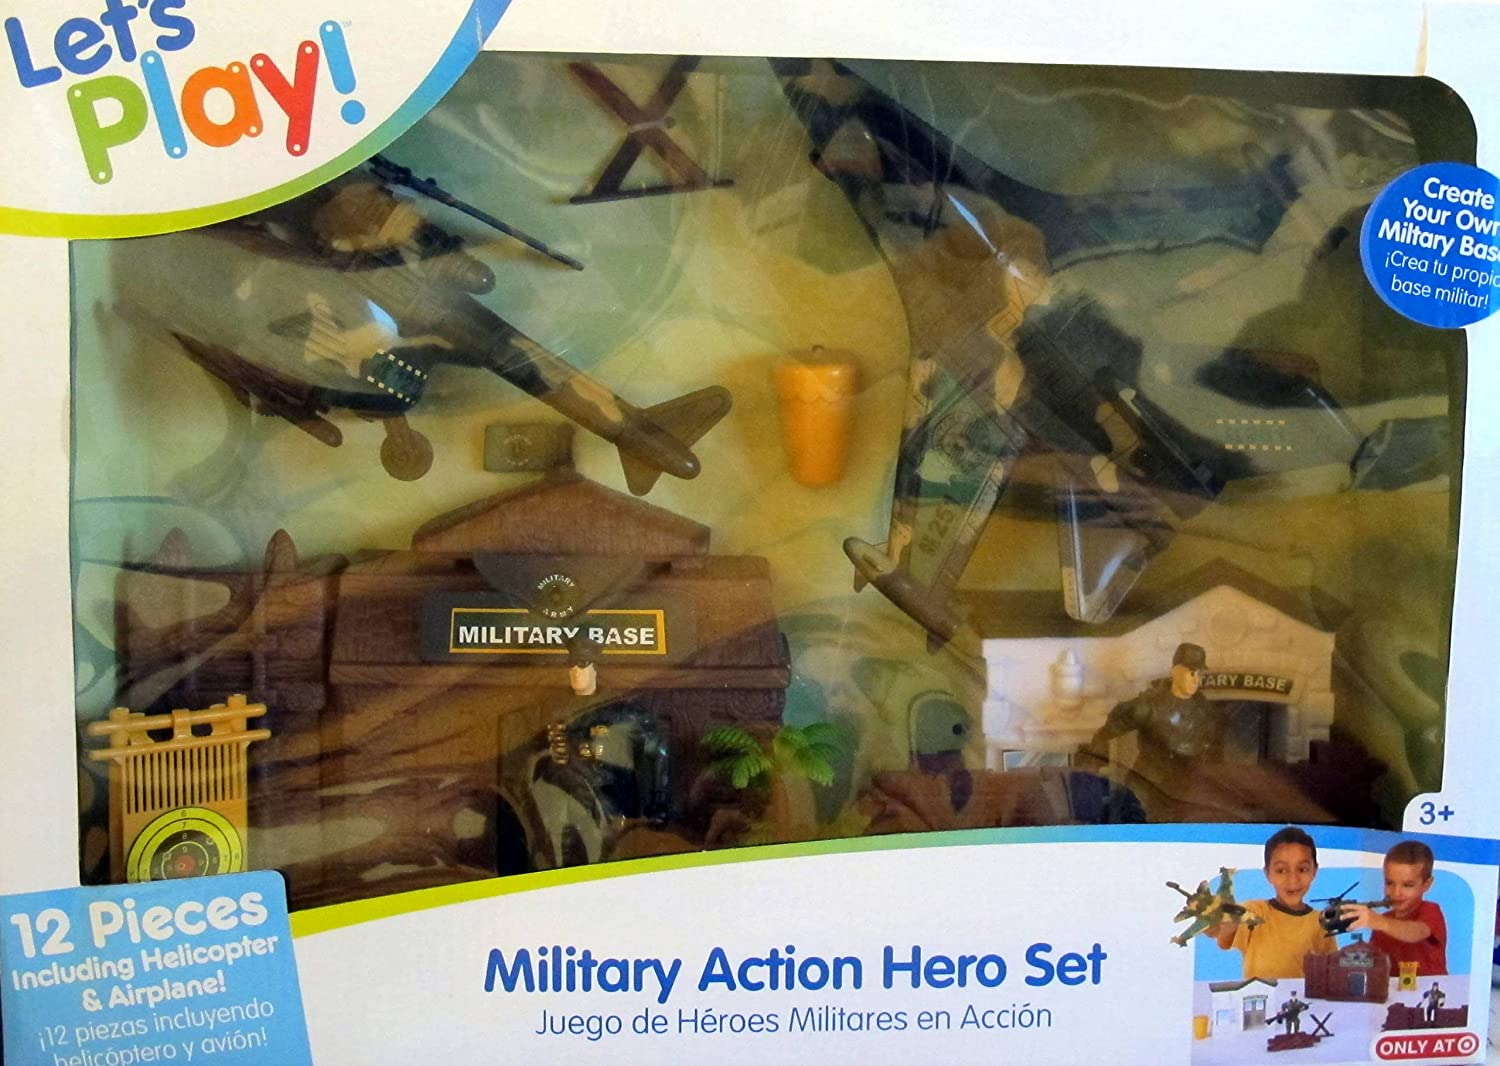 Military Action Hero Set by Jakks Pacific